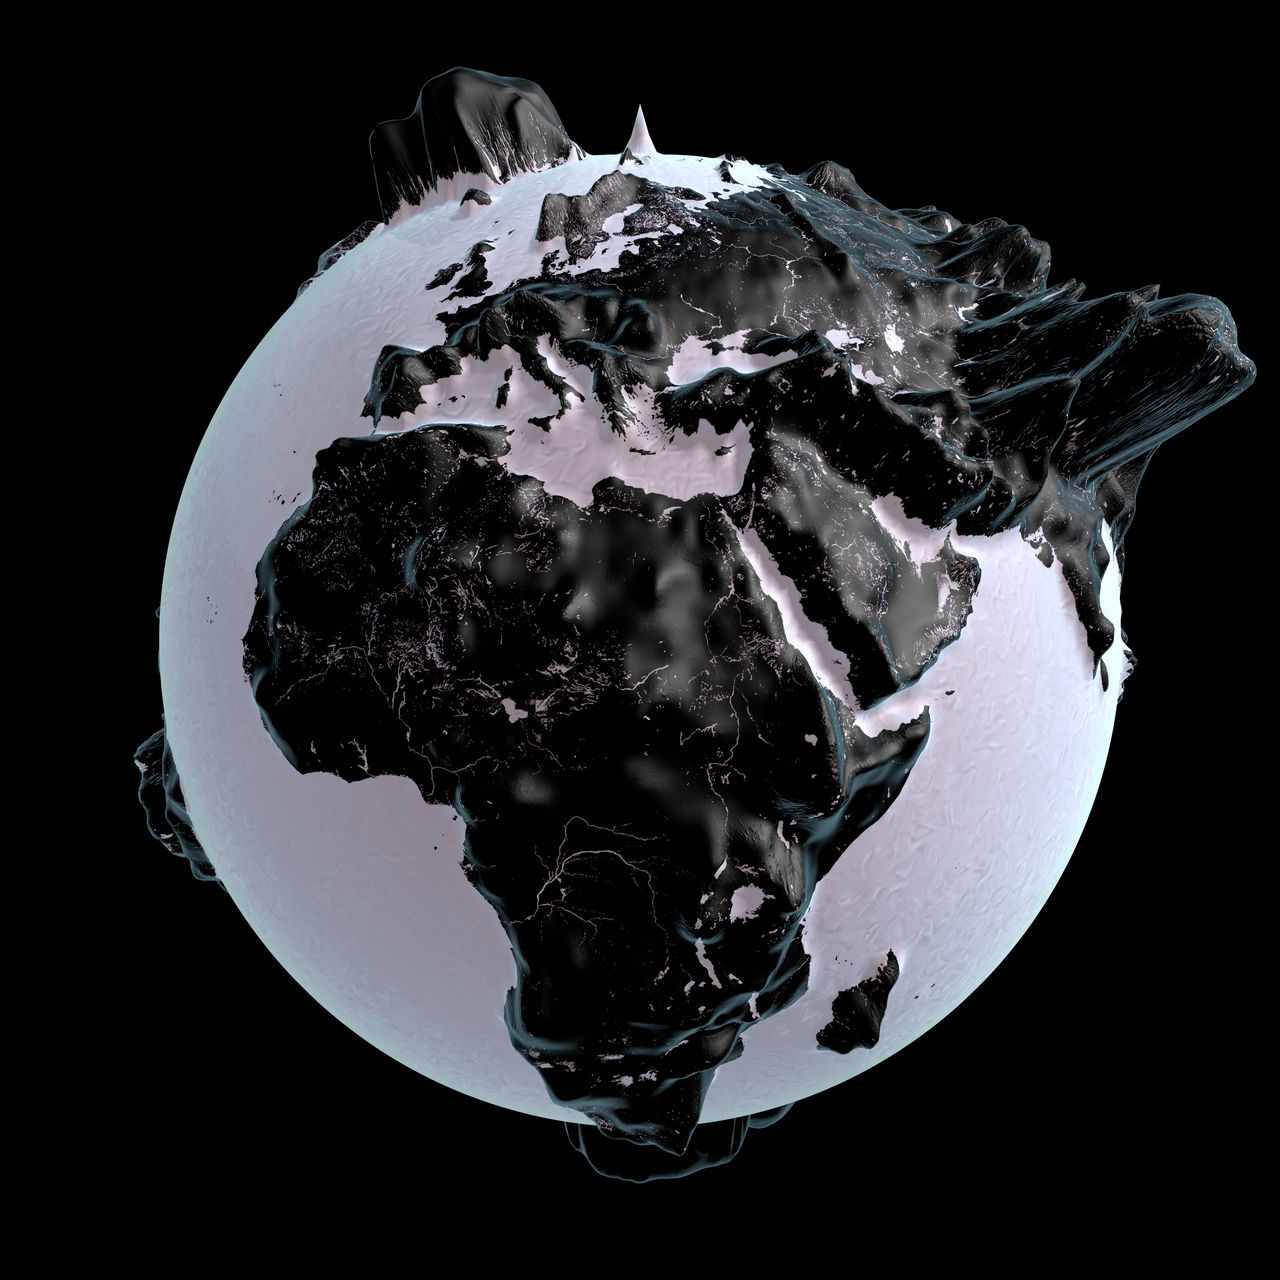 across the globe 3D rendering: planet earth 3D Africa Altitude Altitude Profile Black Continent Continents Earth Europe Global Globe Planet Planet Earth Rendering Terrestrial Globe World World-wide Worldwide